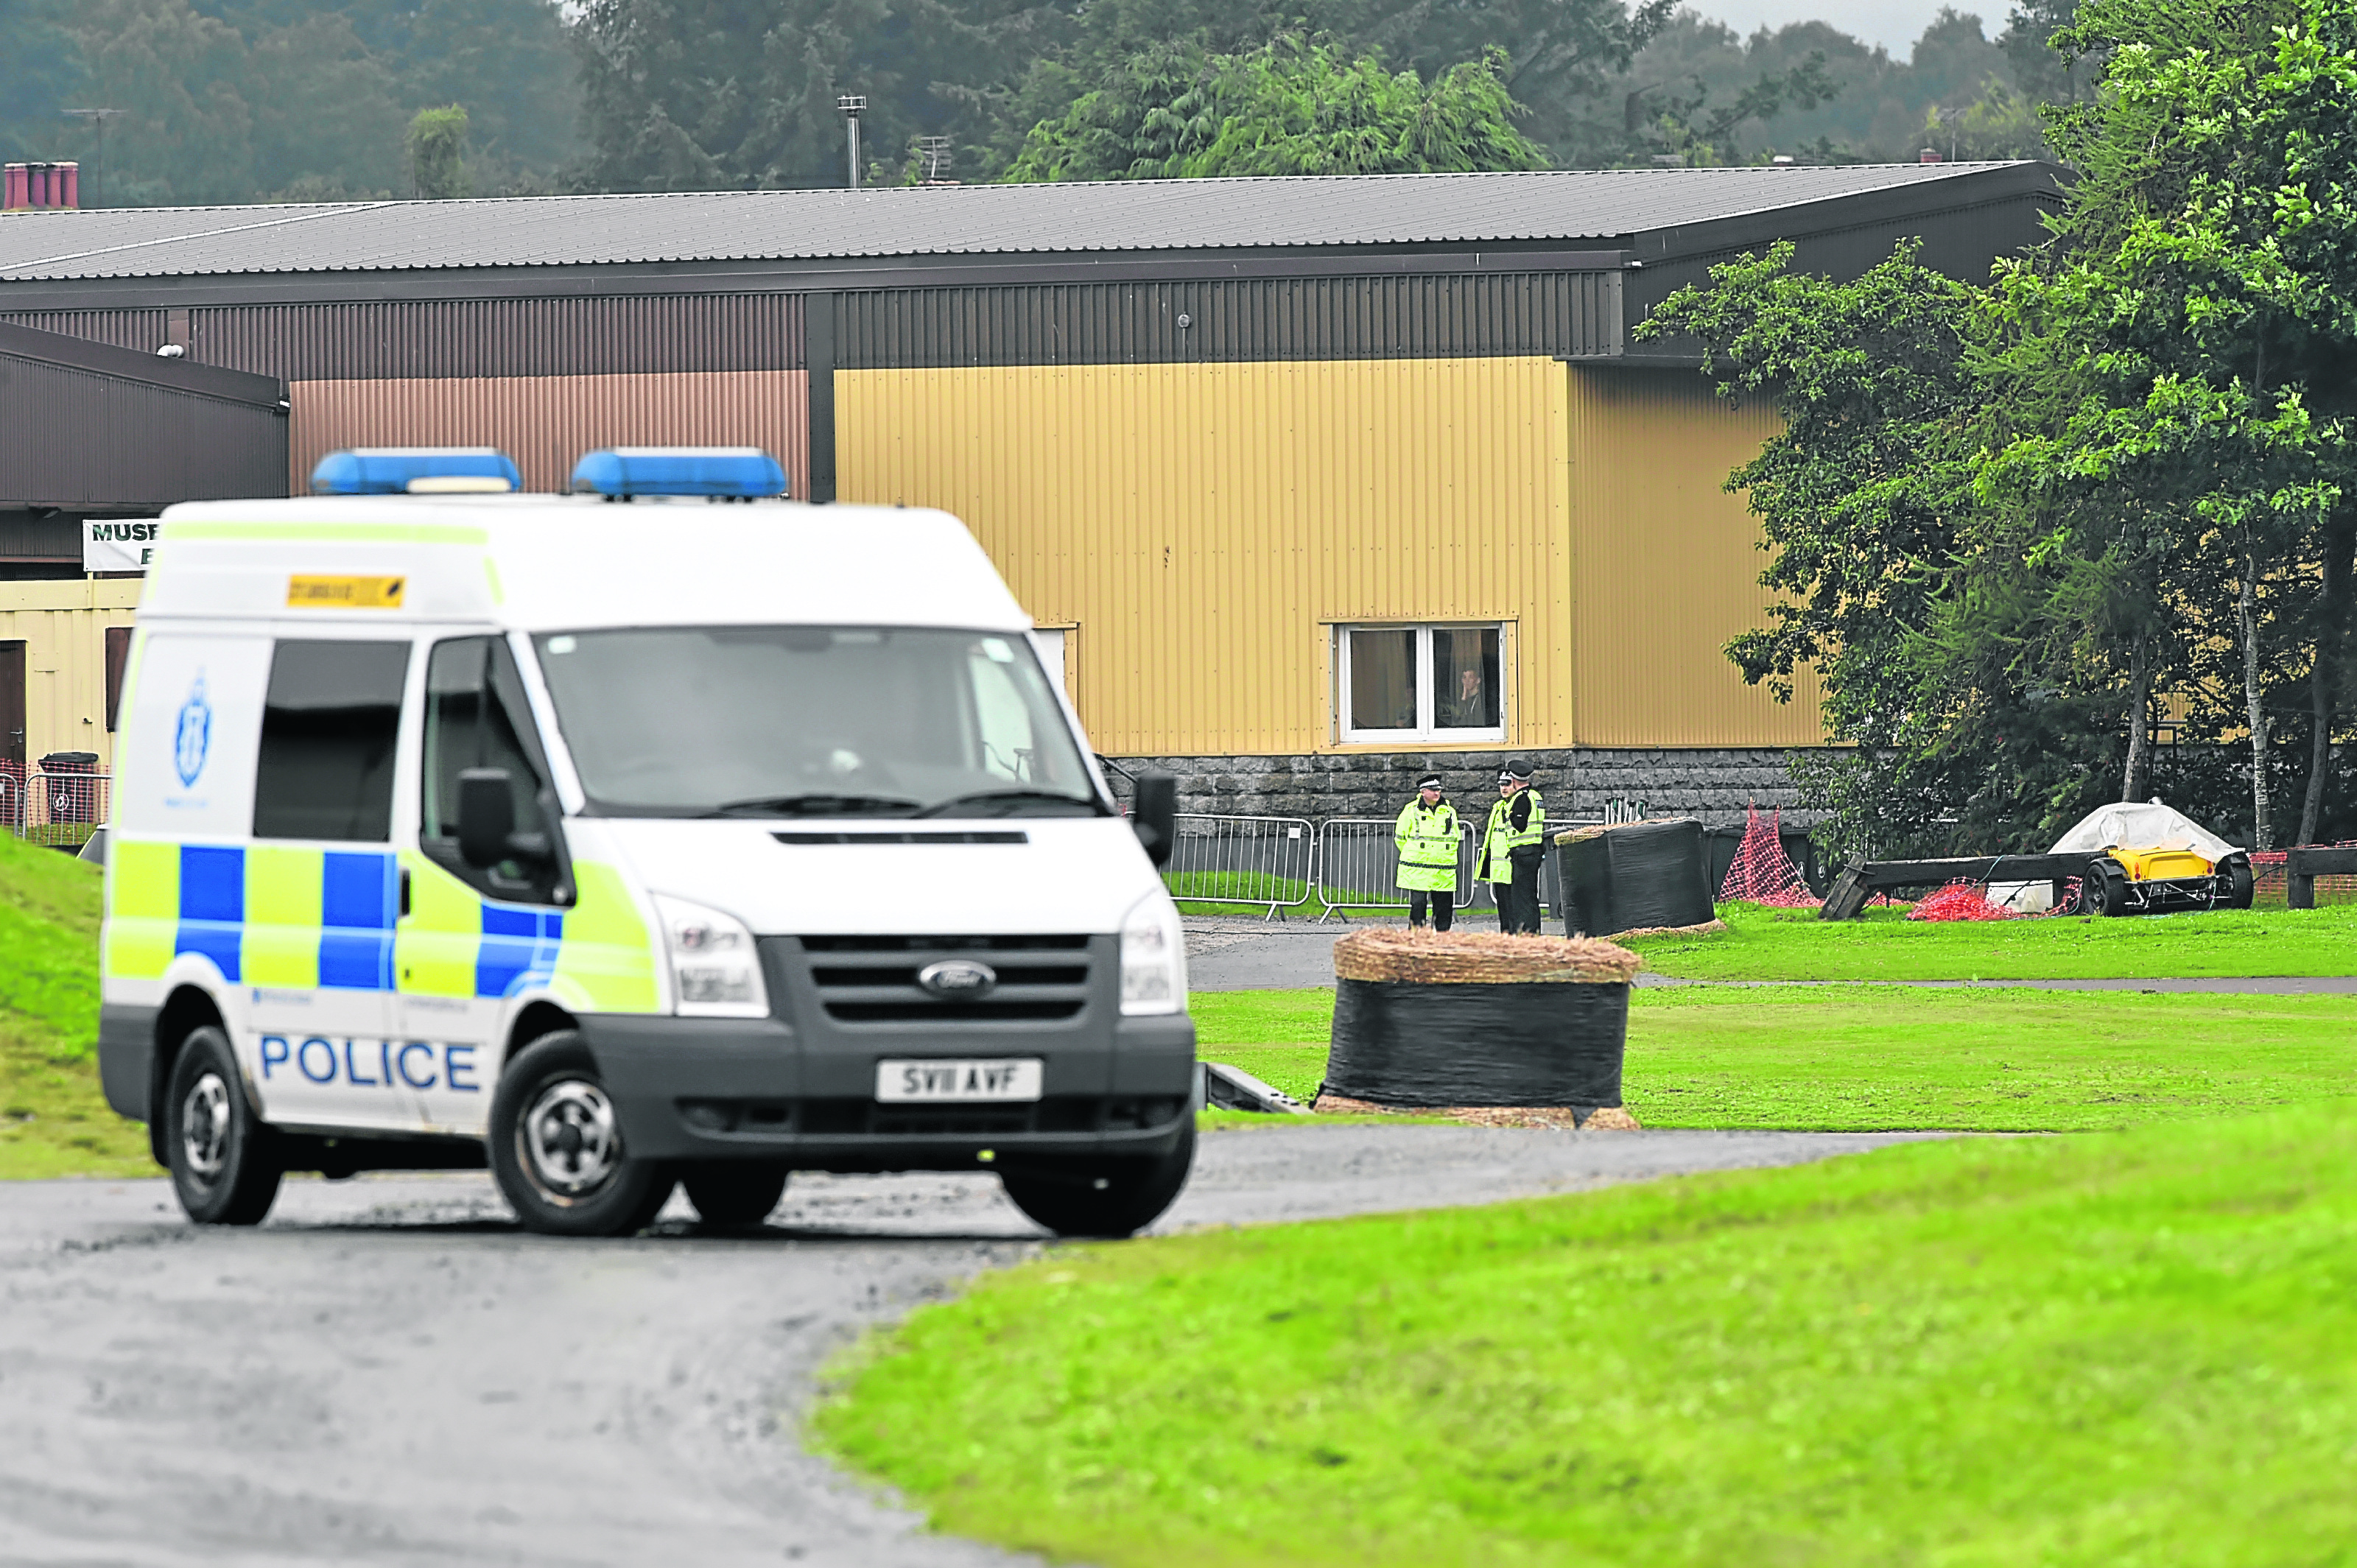 The scene at the Grampian Transport Museum yesterday. Pics by Kenny Elrick.